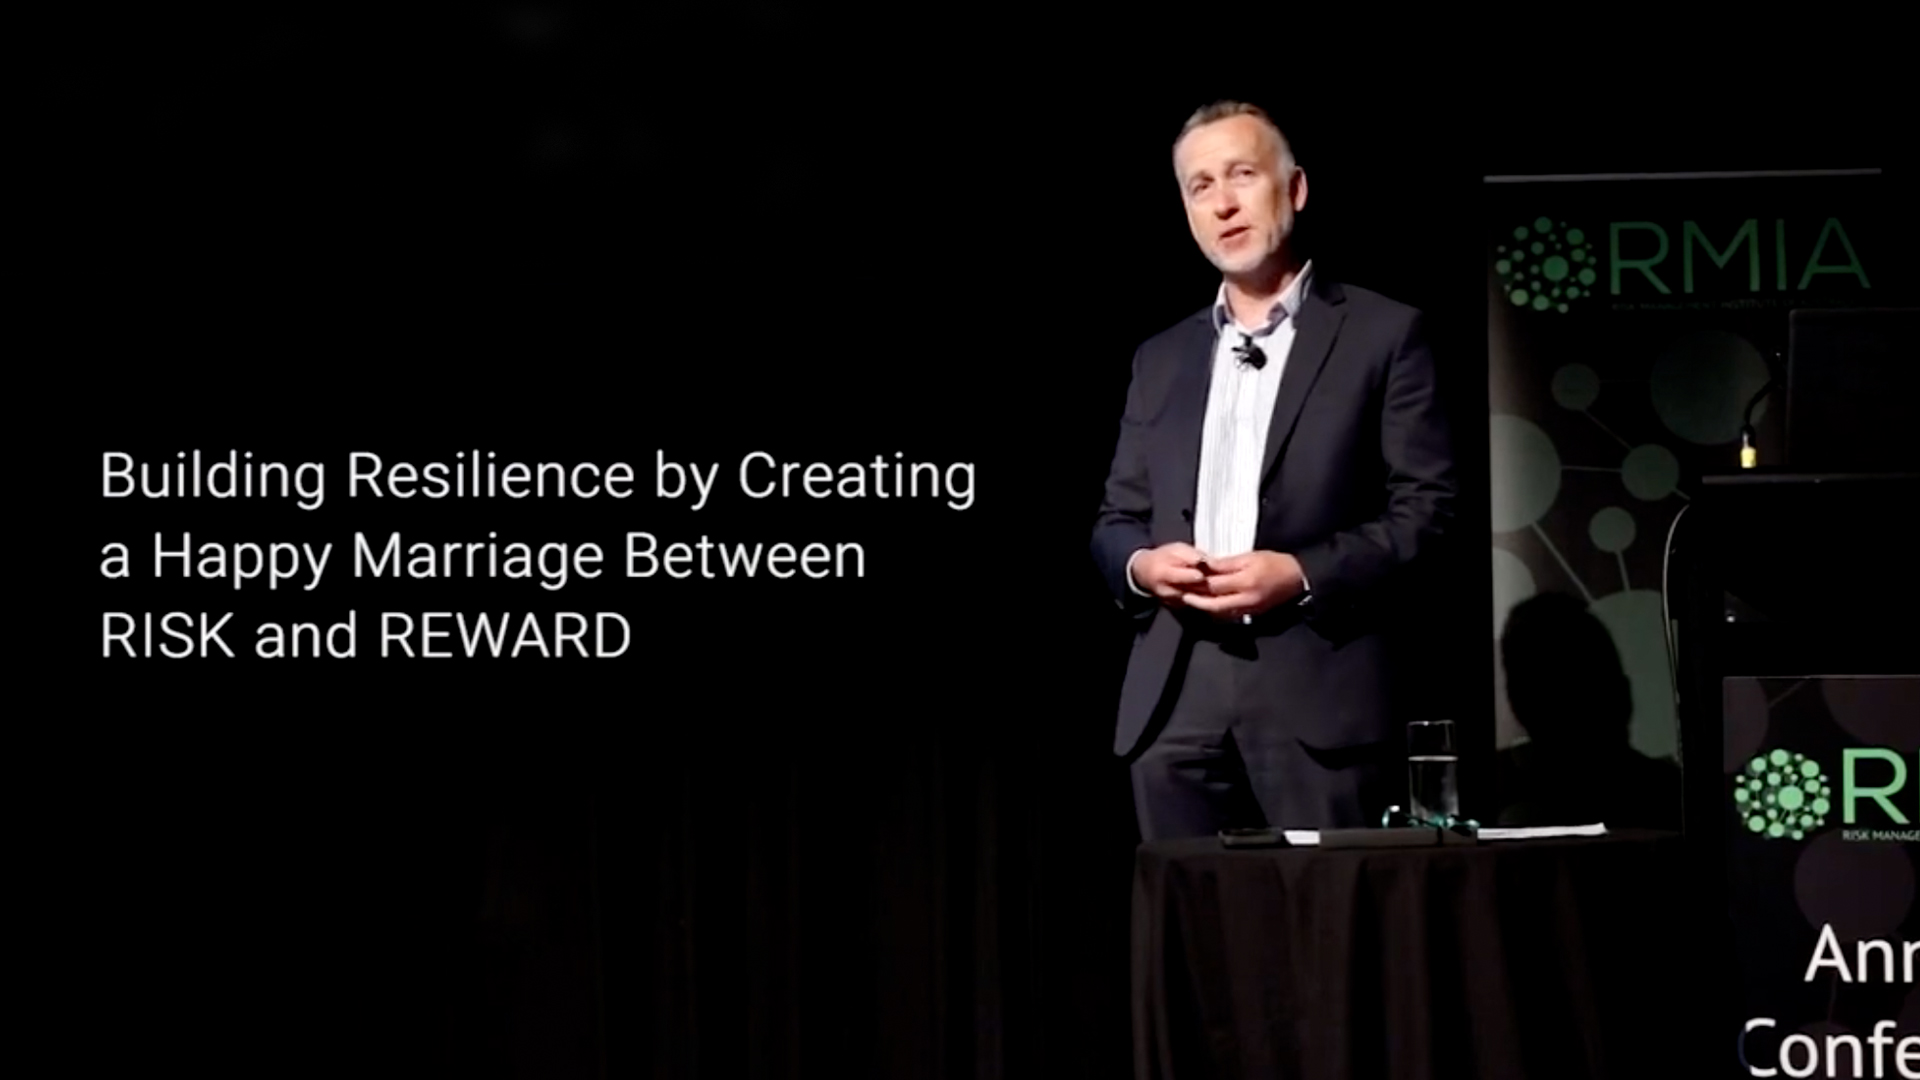 Building Resilience by Creating a Happy Marriage Between Risk & Reward. RMIA Conference